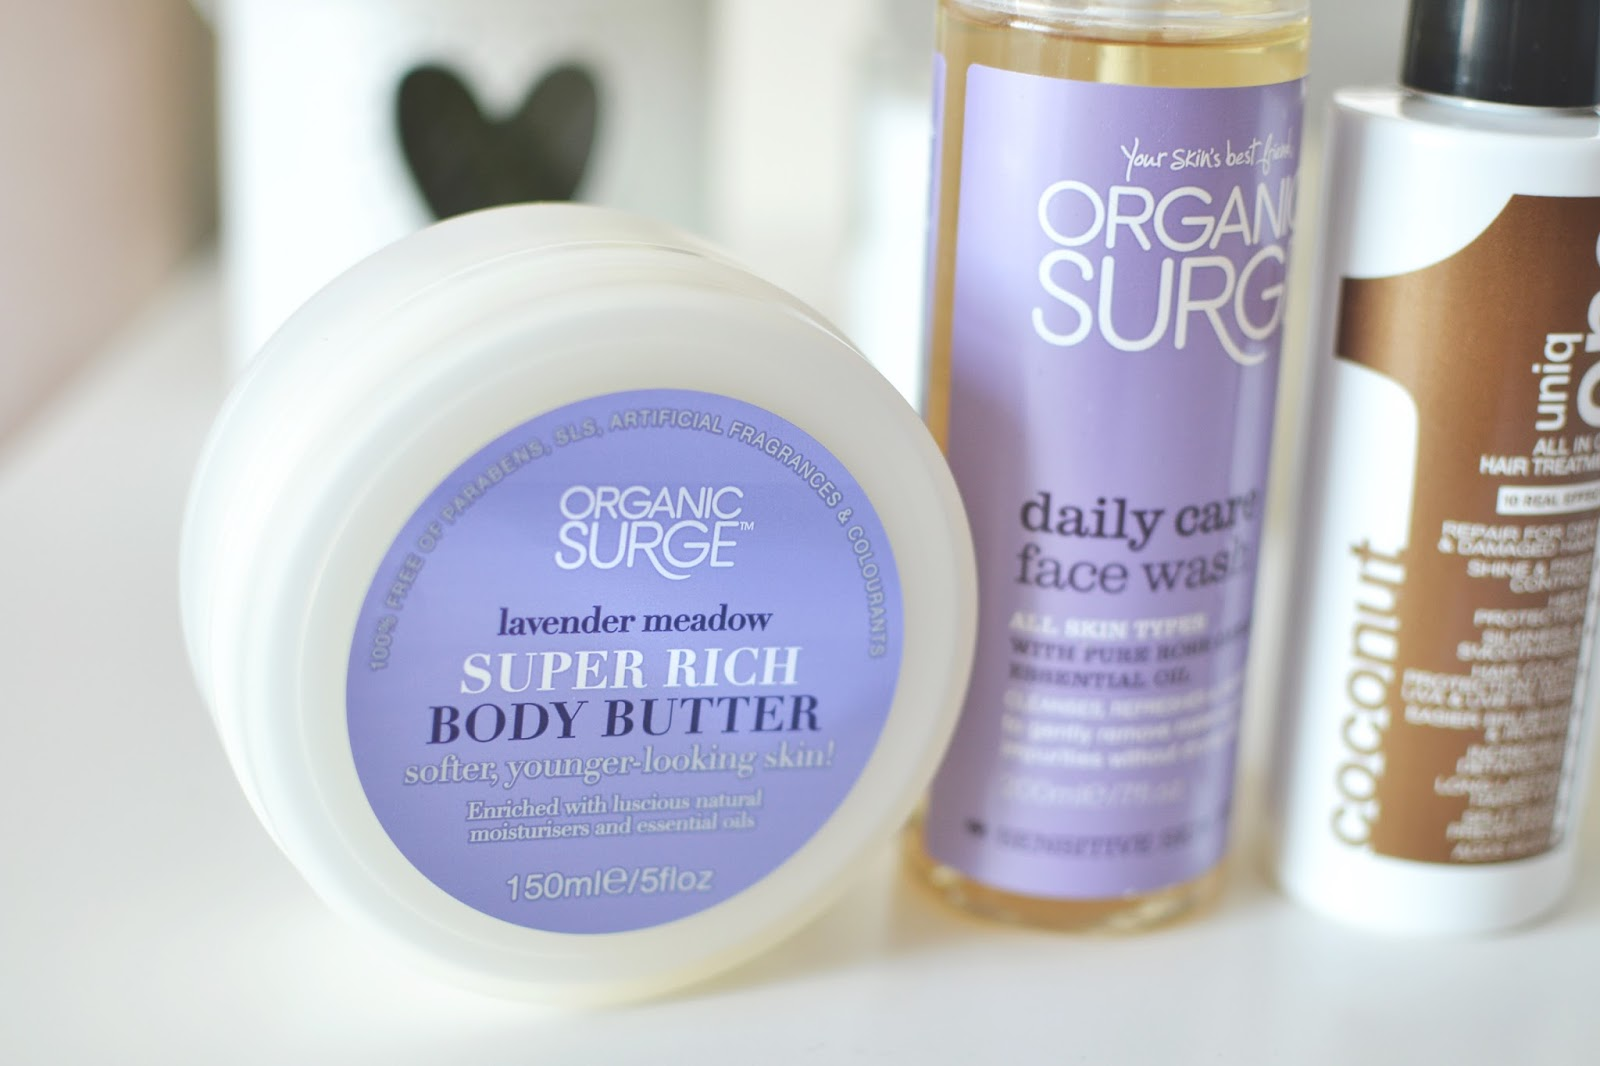 organic surge body butter, lavender body butter